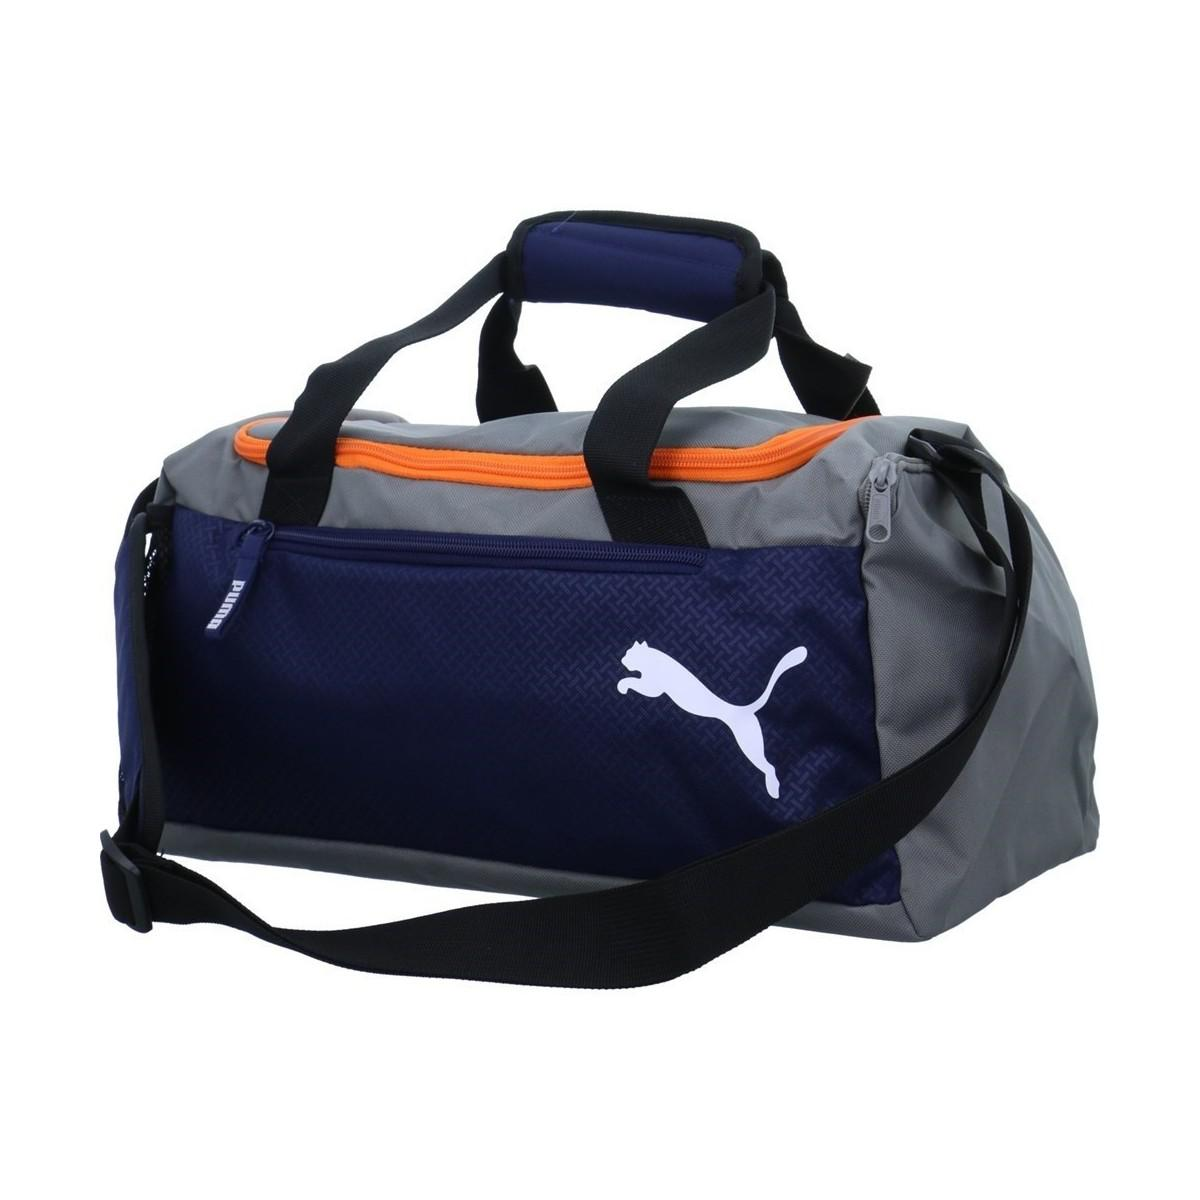 029cb1a4f42157 Puma Fundamentals Sports Men's Sports Bag In Blue in Blue for Men - Lyst